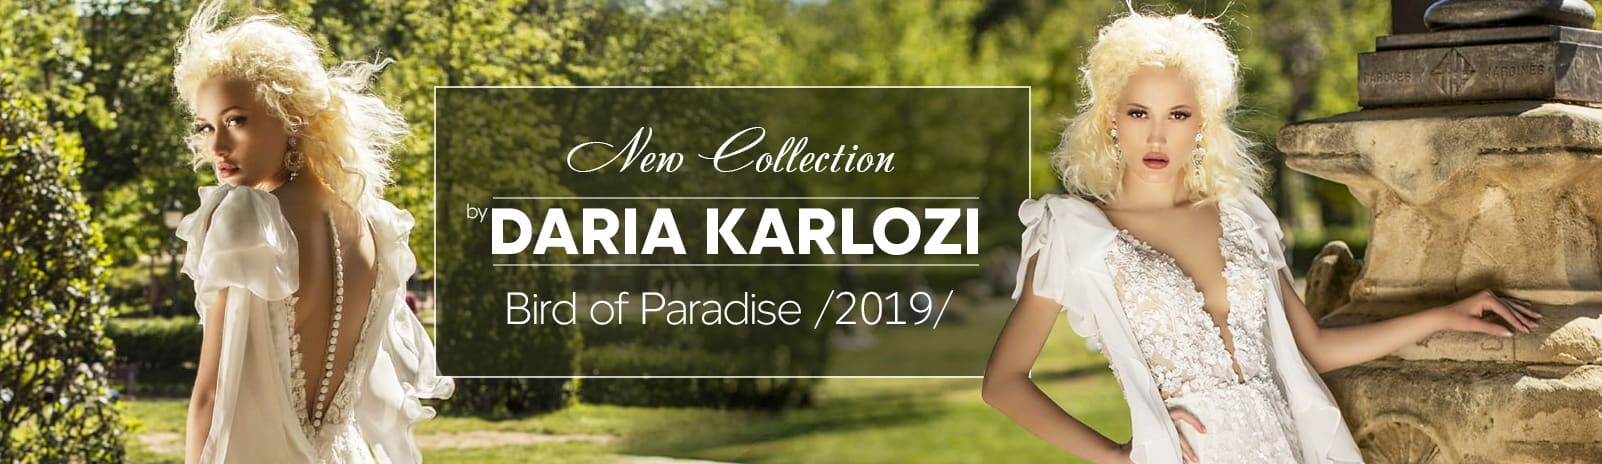 Daria Karlozi Bird of Paradise 2019